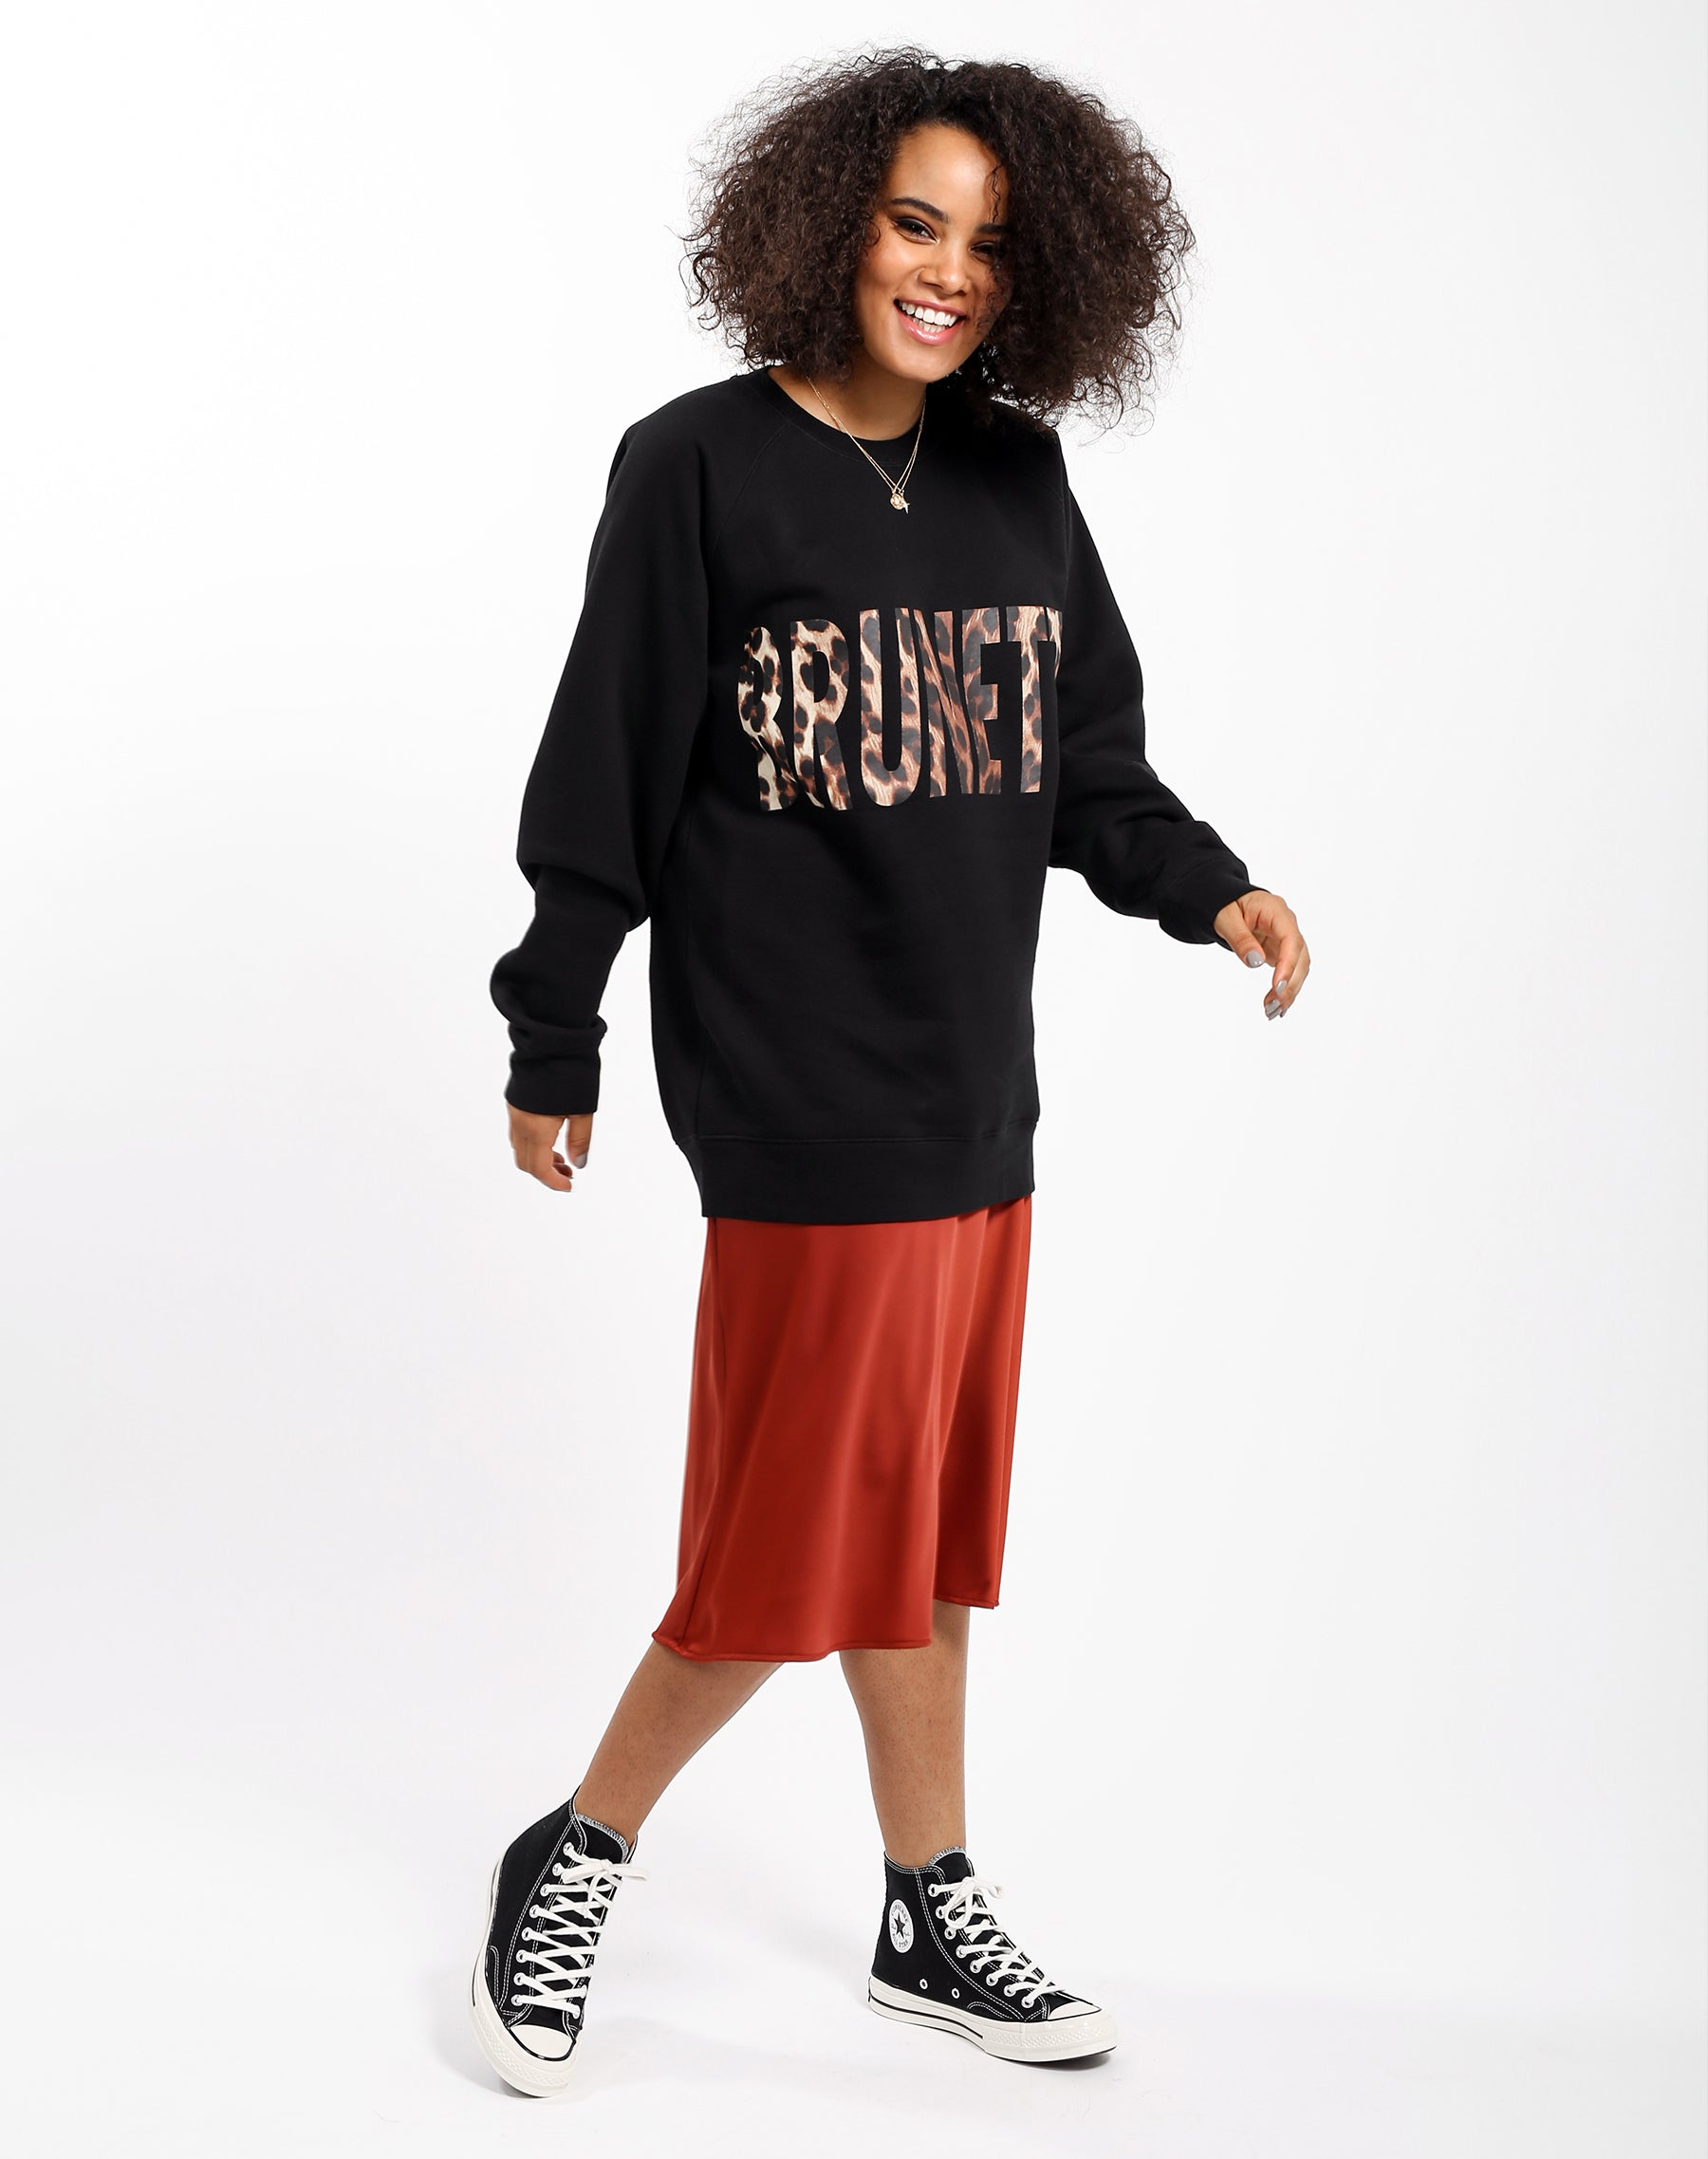 Side photo of the Brunette big sister crew neck sweatshirt in Leopard by Brunette the Label.